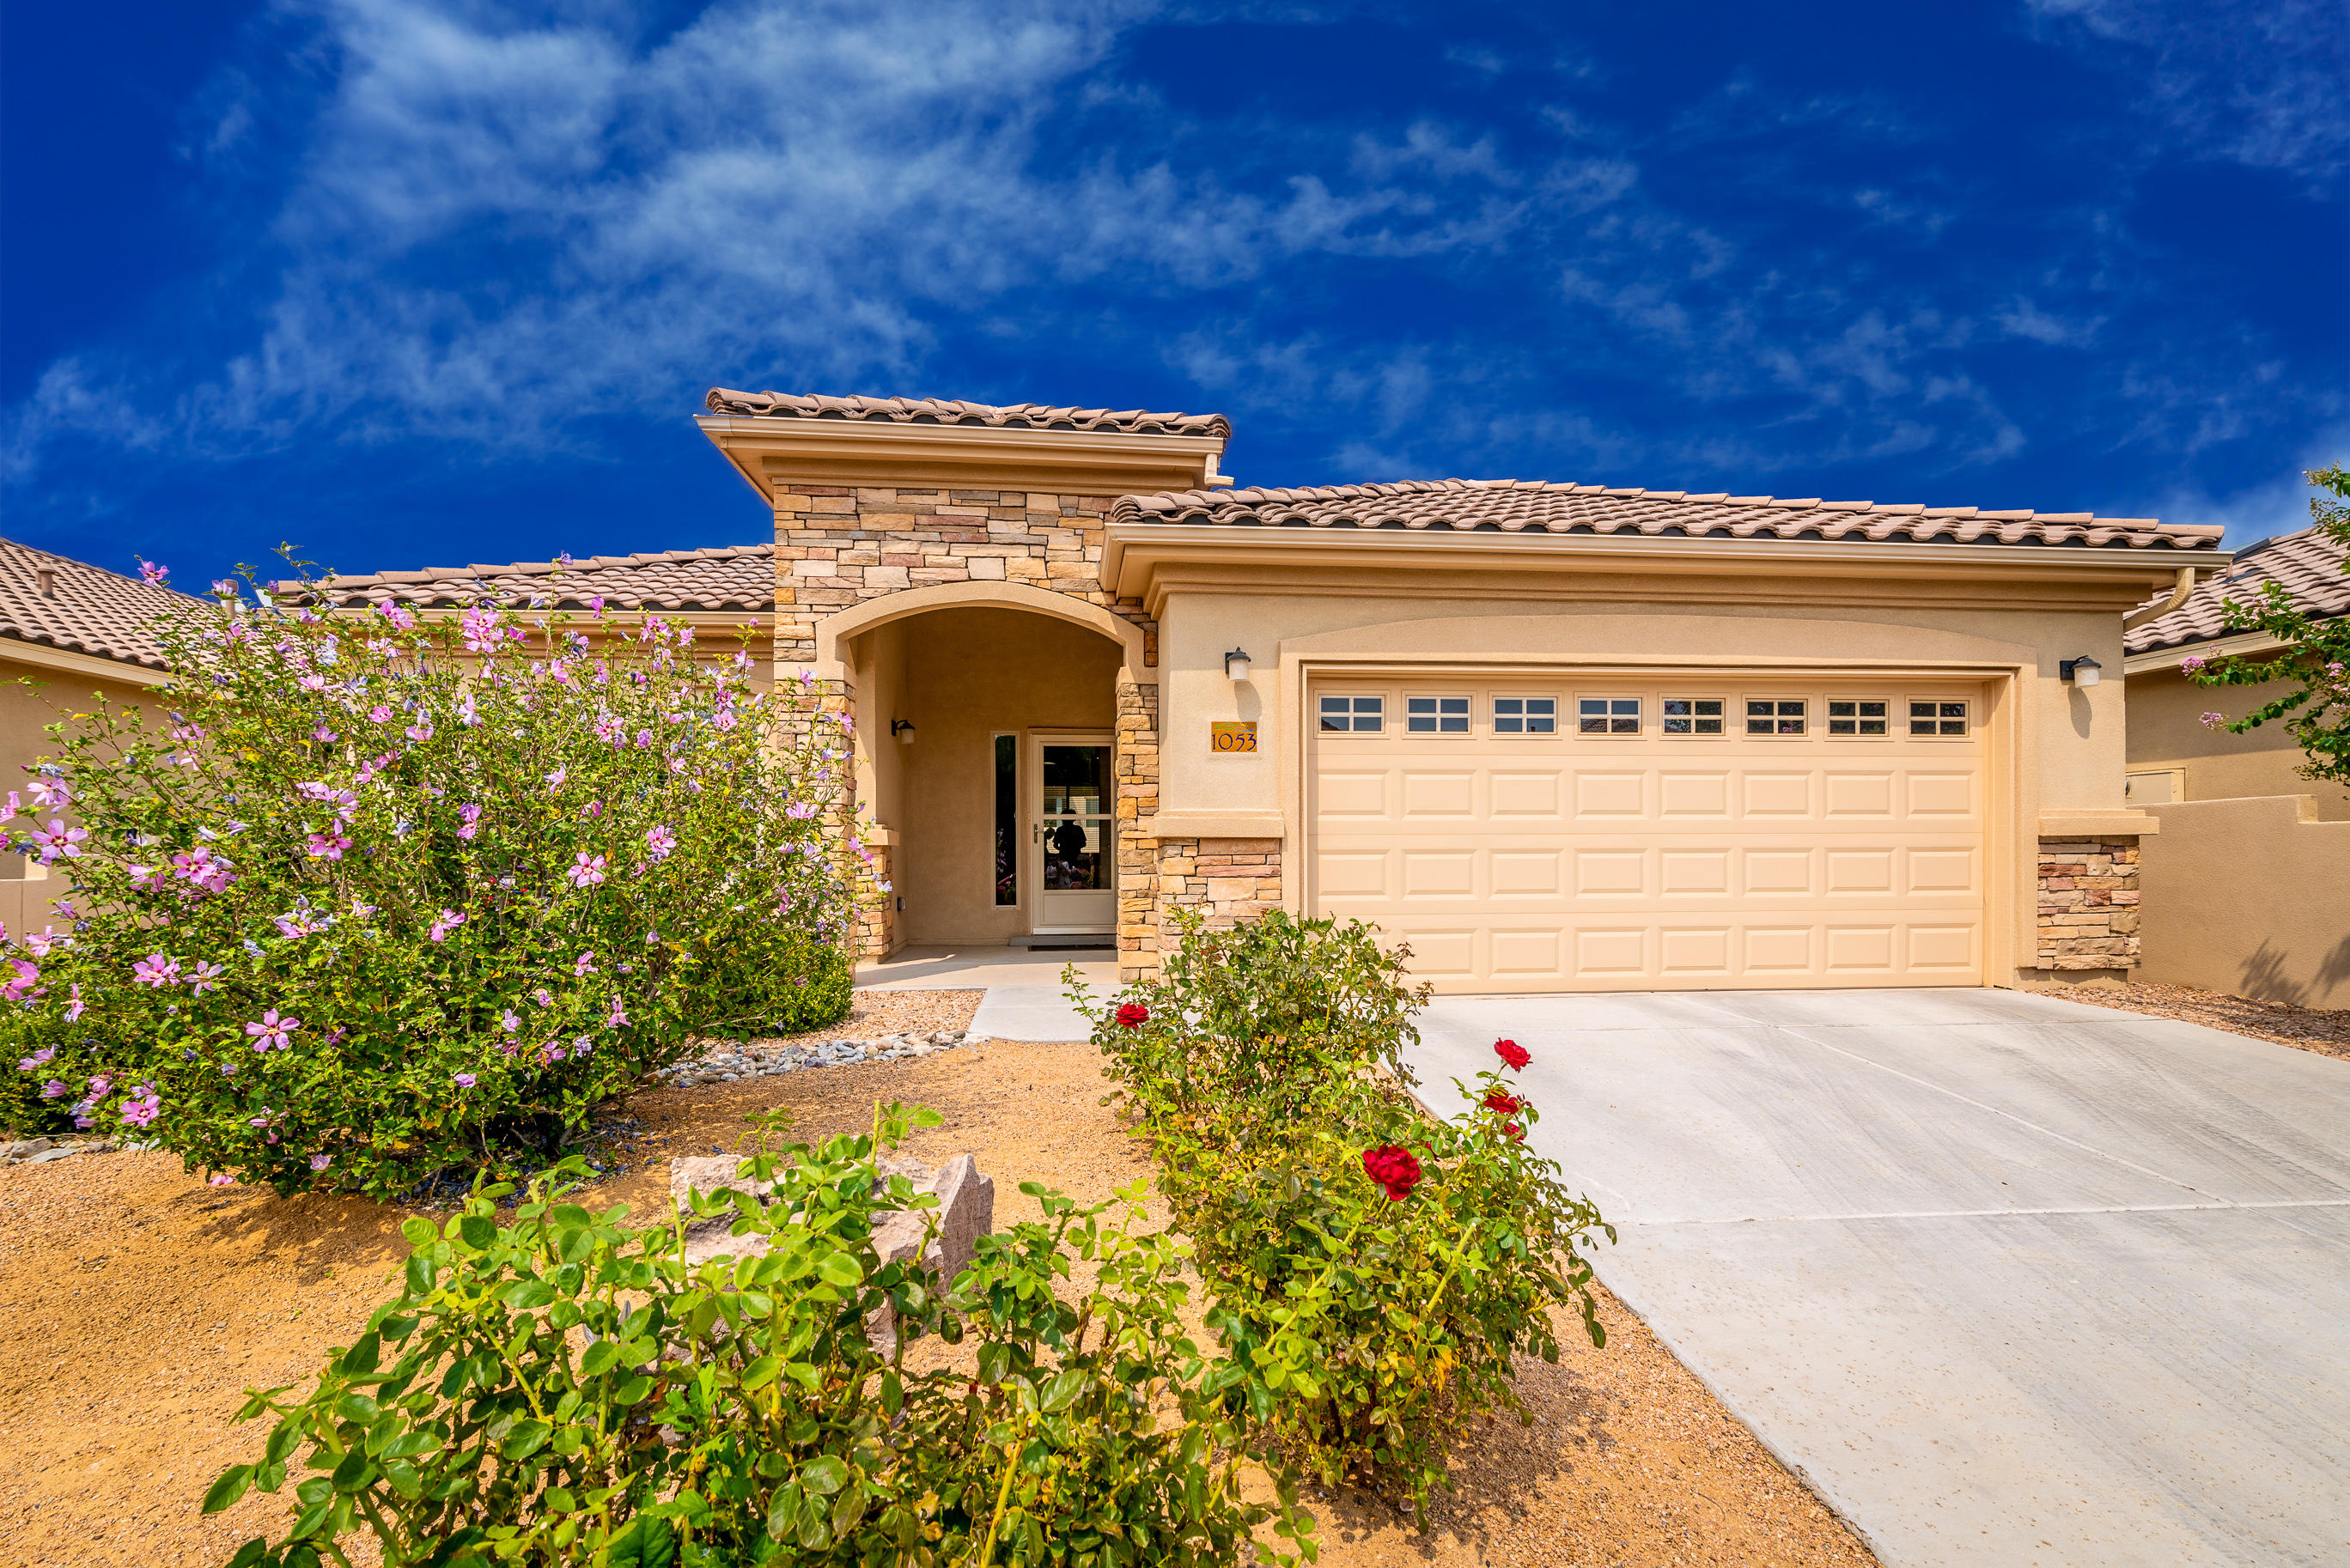 Welcome to Del Webb Alegria, a 55+ Gated Community!  This Popular ''TAOS'' Model is 2156SF and has 3 BR's and 3 Full Baths along with a nice size 2CG, Dining Room, Huge Kitchen w/Island and nook!  Kitchen has an abundant amount of cabinets, granite, gas cooktop, wall oven.  The front patio and nook area have a nice little view of the Sandia's.  The Master Suite includes a large walk in closet, dbl sinks, garden tub and separate shower! All Appliances stay including the washer/dryer & fridge. Soft water system and REF Air! There is a large covered patio and the back wall has been stuccoed to match the home!  Also, there are beautiful custom made iron gates at each side of the home! Enjoy the Clubhouse, indoor/outdoor pools, gym,  daily activities, Bosque trail and so much more!!